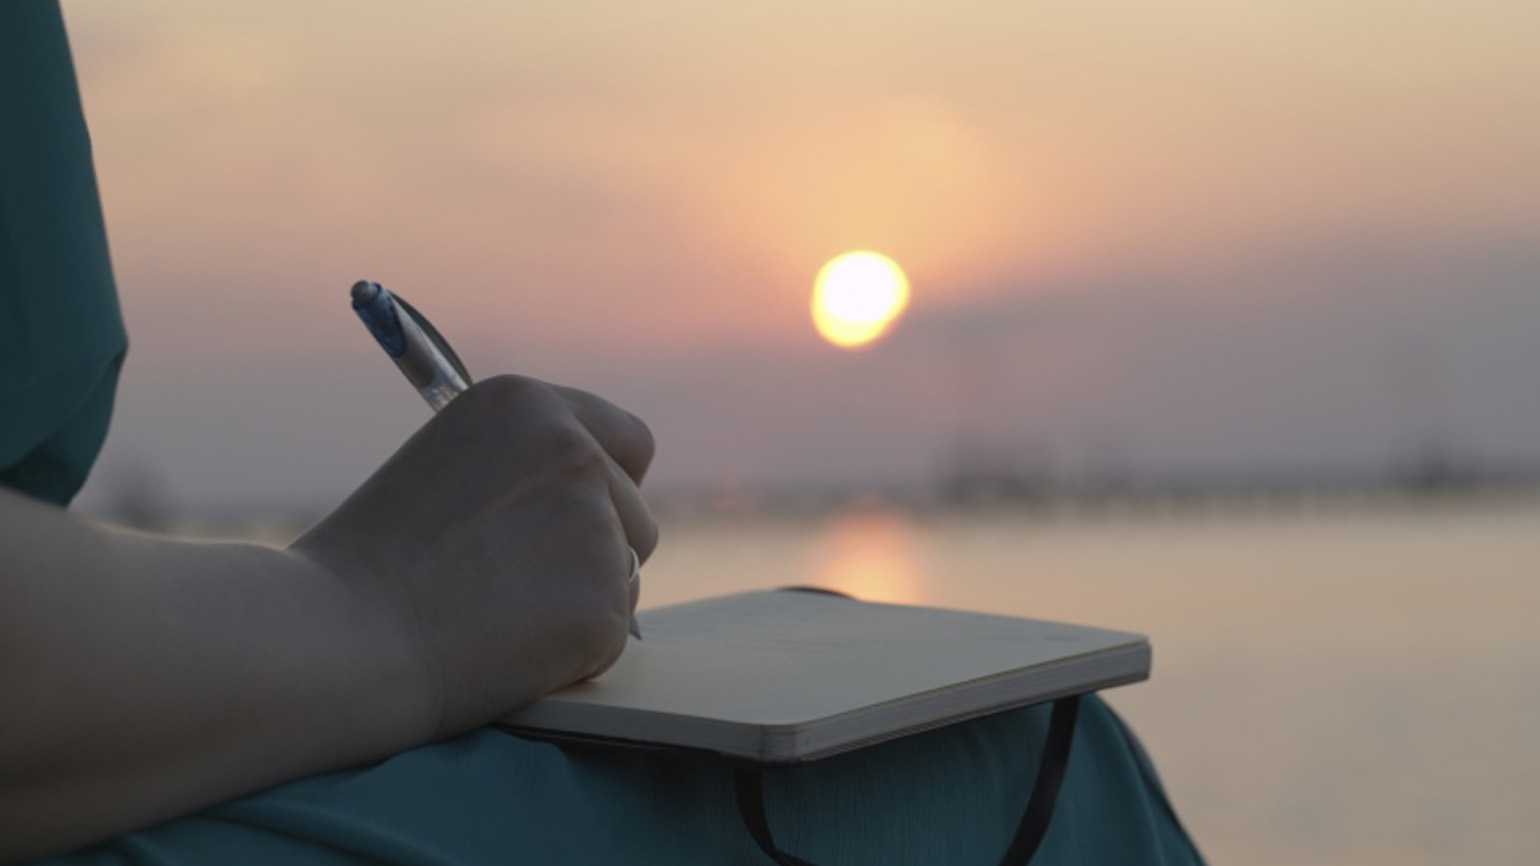 A woman journaling during sunset.